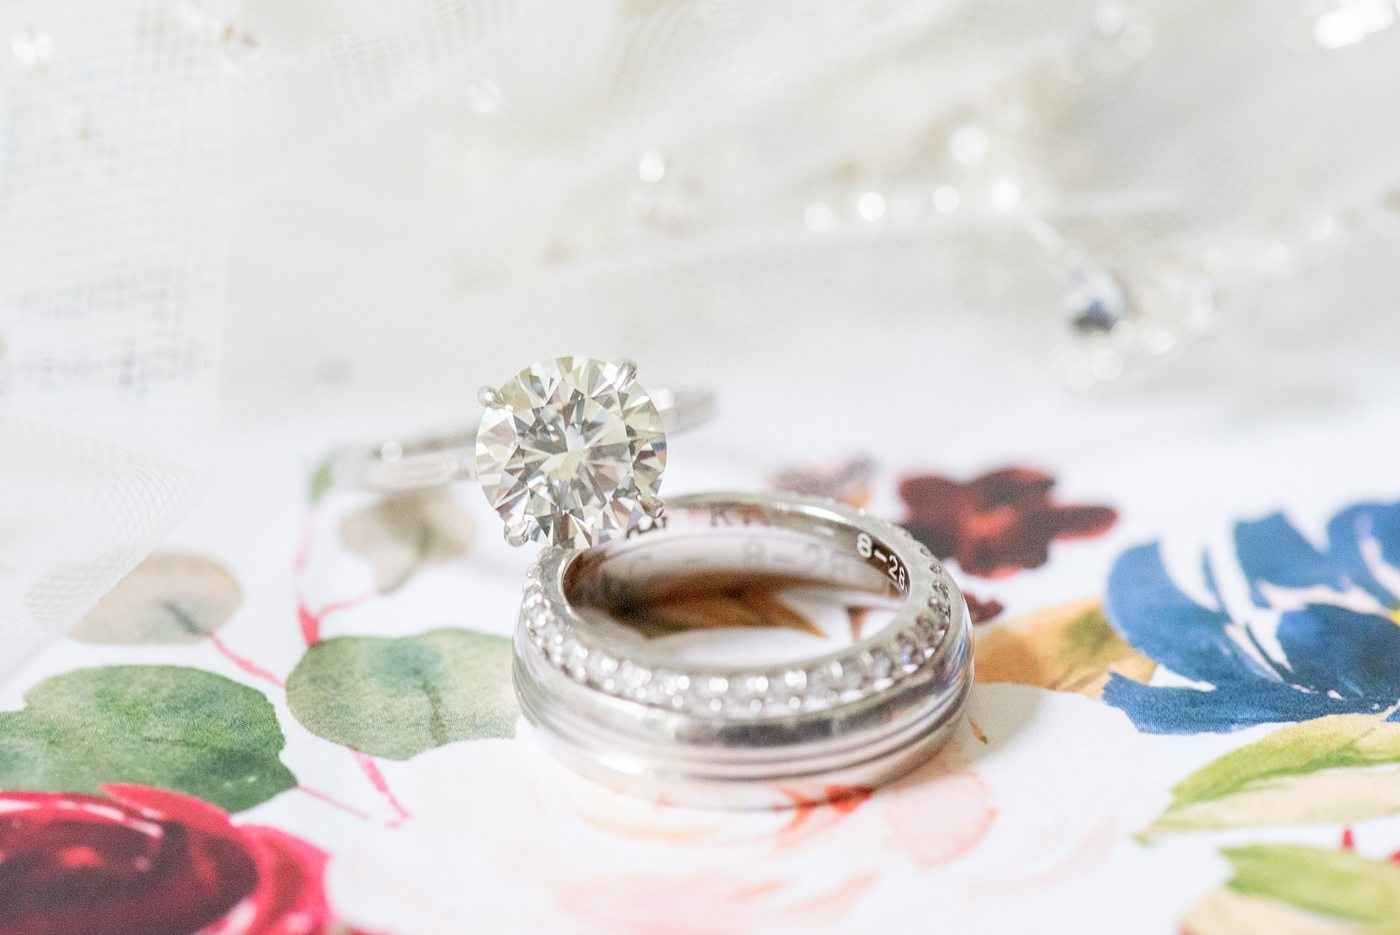 New York Botanical Garden wedding photos by Mikkel Paige Photography. The bride and groom had white gold and diamond wedding rings. After the couple's engagement photoshoot in Manhattan I was so excited for their fall wedding near the Conservatory at the Terrace Room, at this NYC venue. #mikkelpaige #nybg #asianbride #redweddinginvitation #weddingshoes #newyorkbotanicalgardenwedding #NYBotanicalGarden #Bronxwedding #newyorkcityweddingvenue #bridestyle #detailphotos #weddingrings